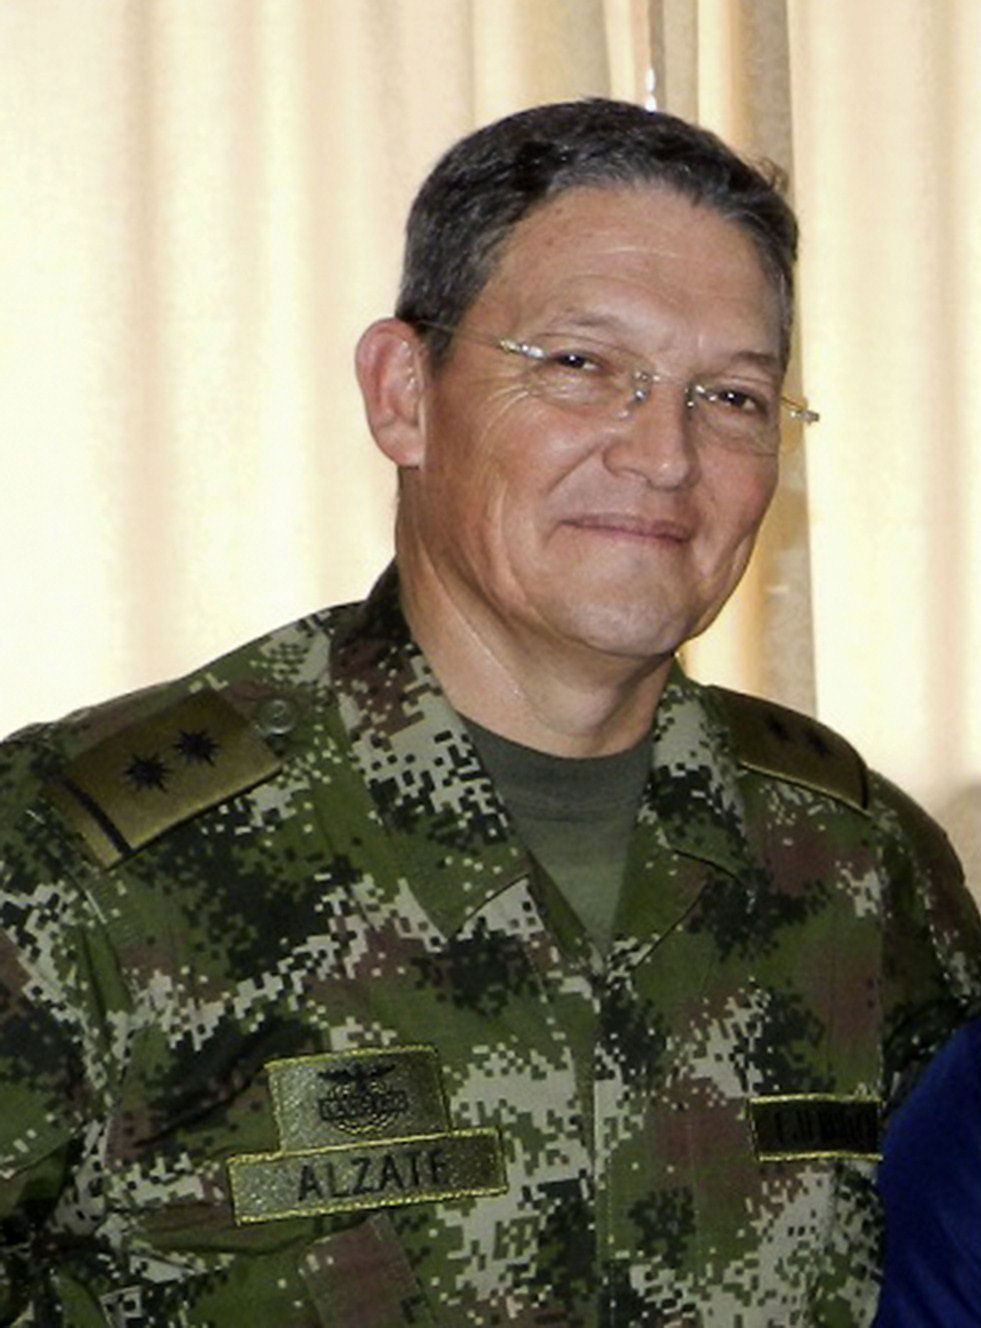 Colombian Army General Rubén Darío Alzate